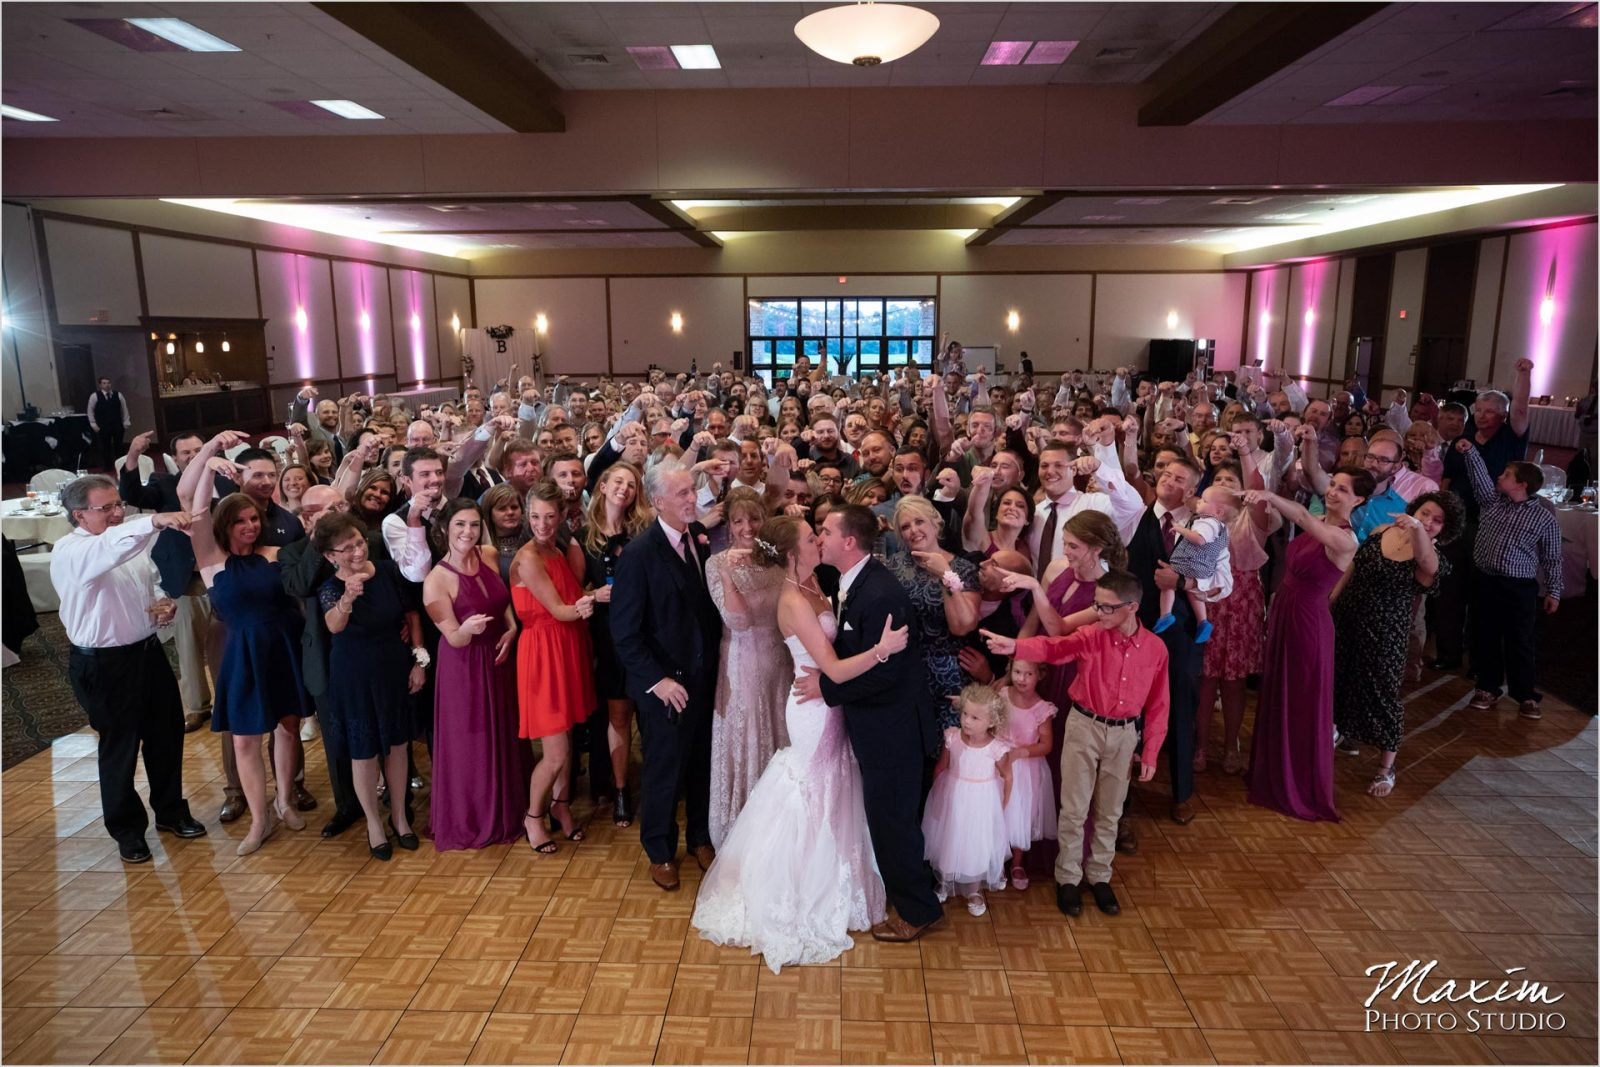 Oasis Conference Center, Cincinnati Wedding Photography, Wedding Reception Group Photo